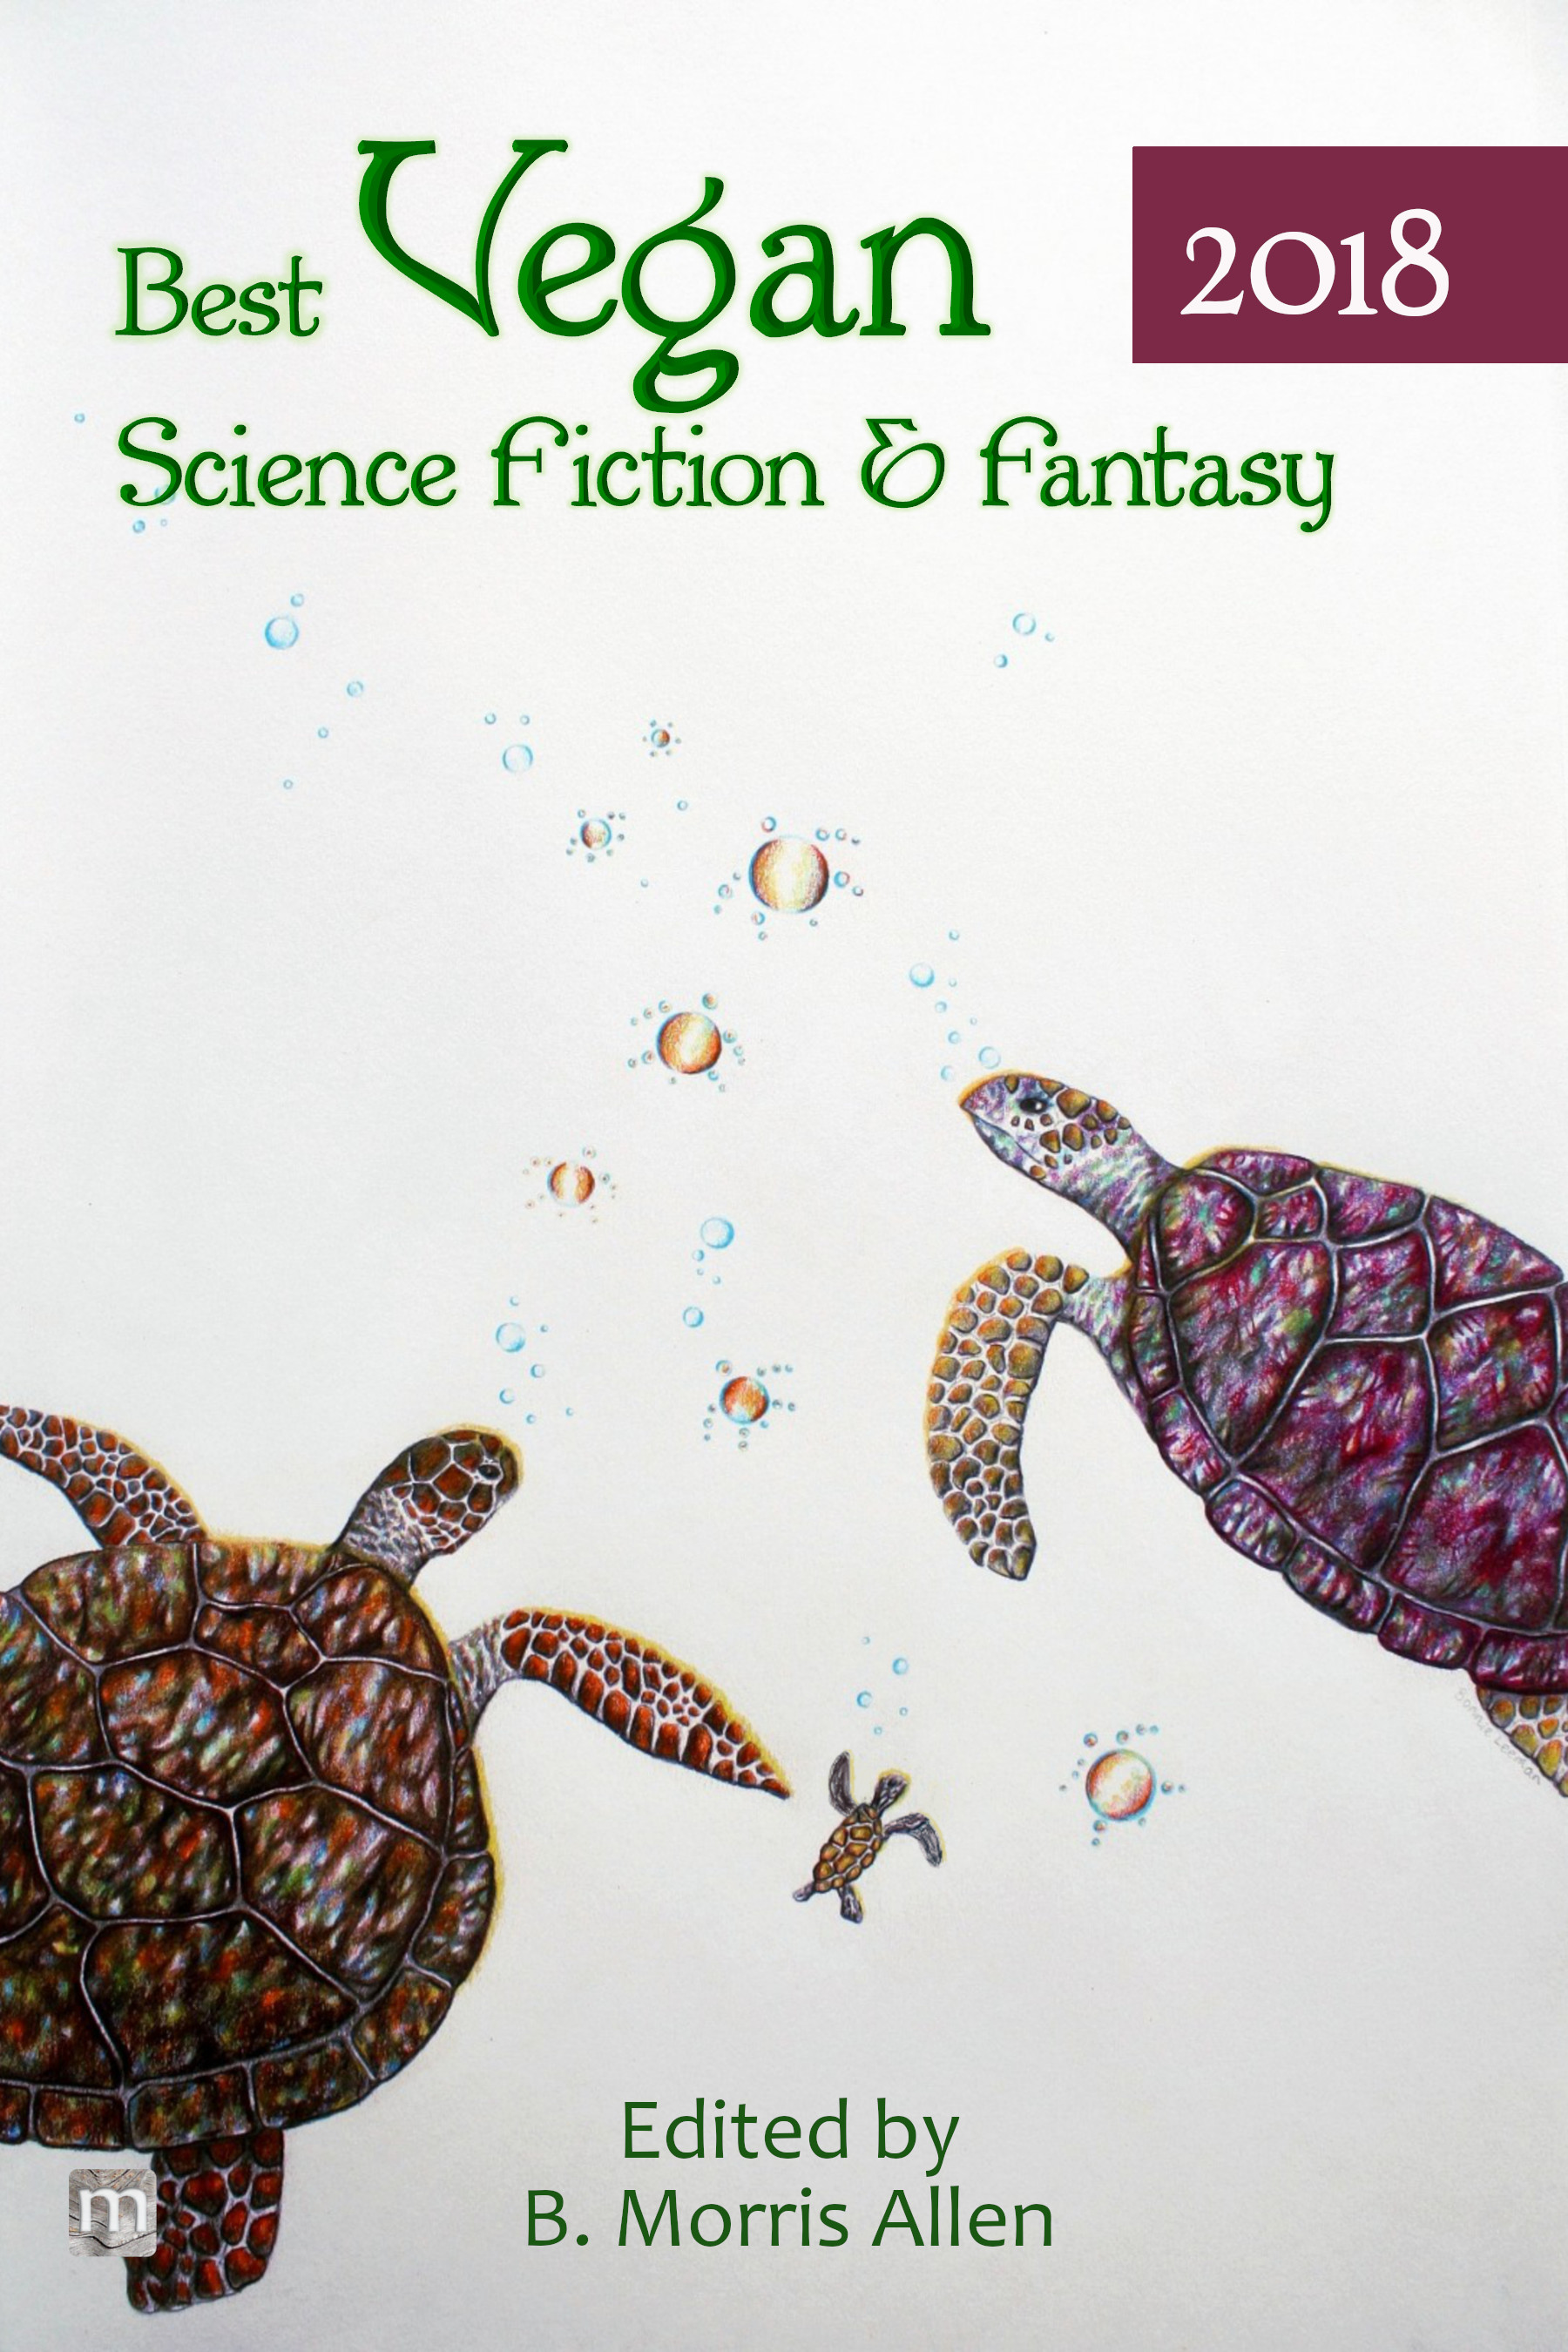 Best Vegan Science Fiction & Fantasy of 2018